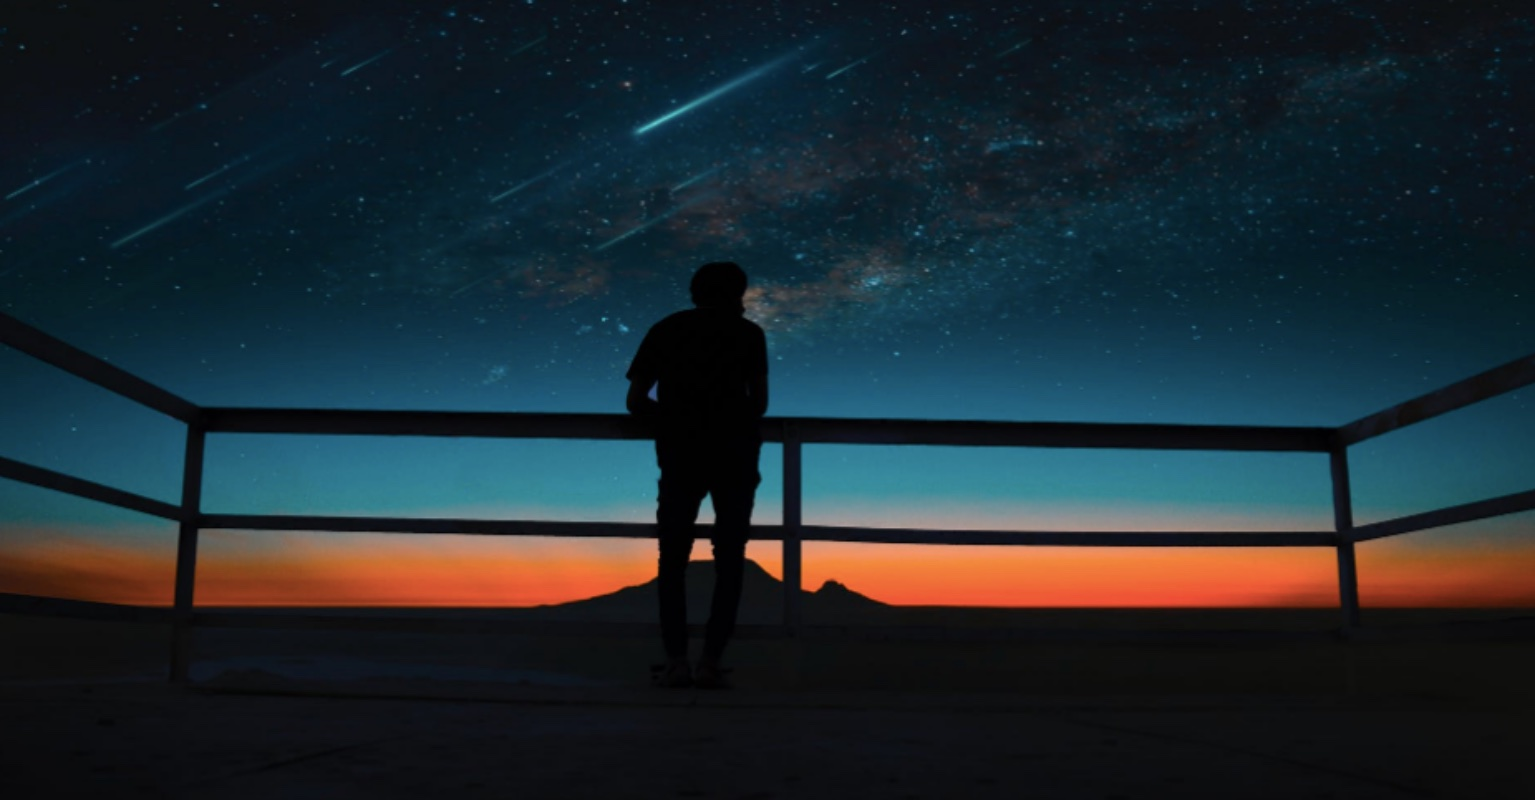 The first meteor shower of 2021 will light up the skies this weekend